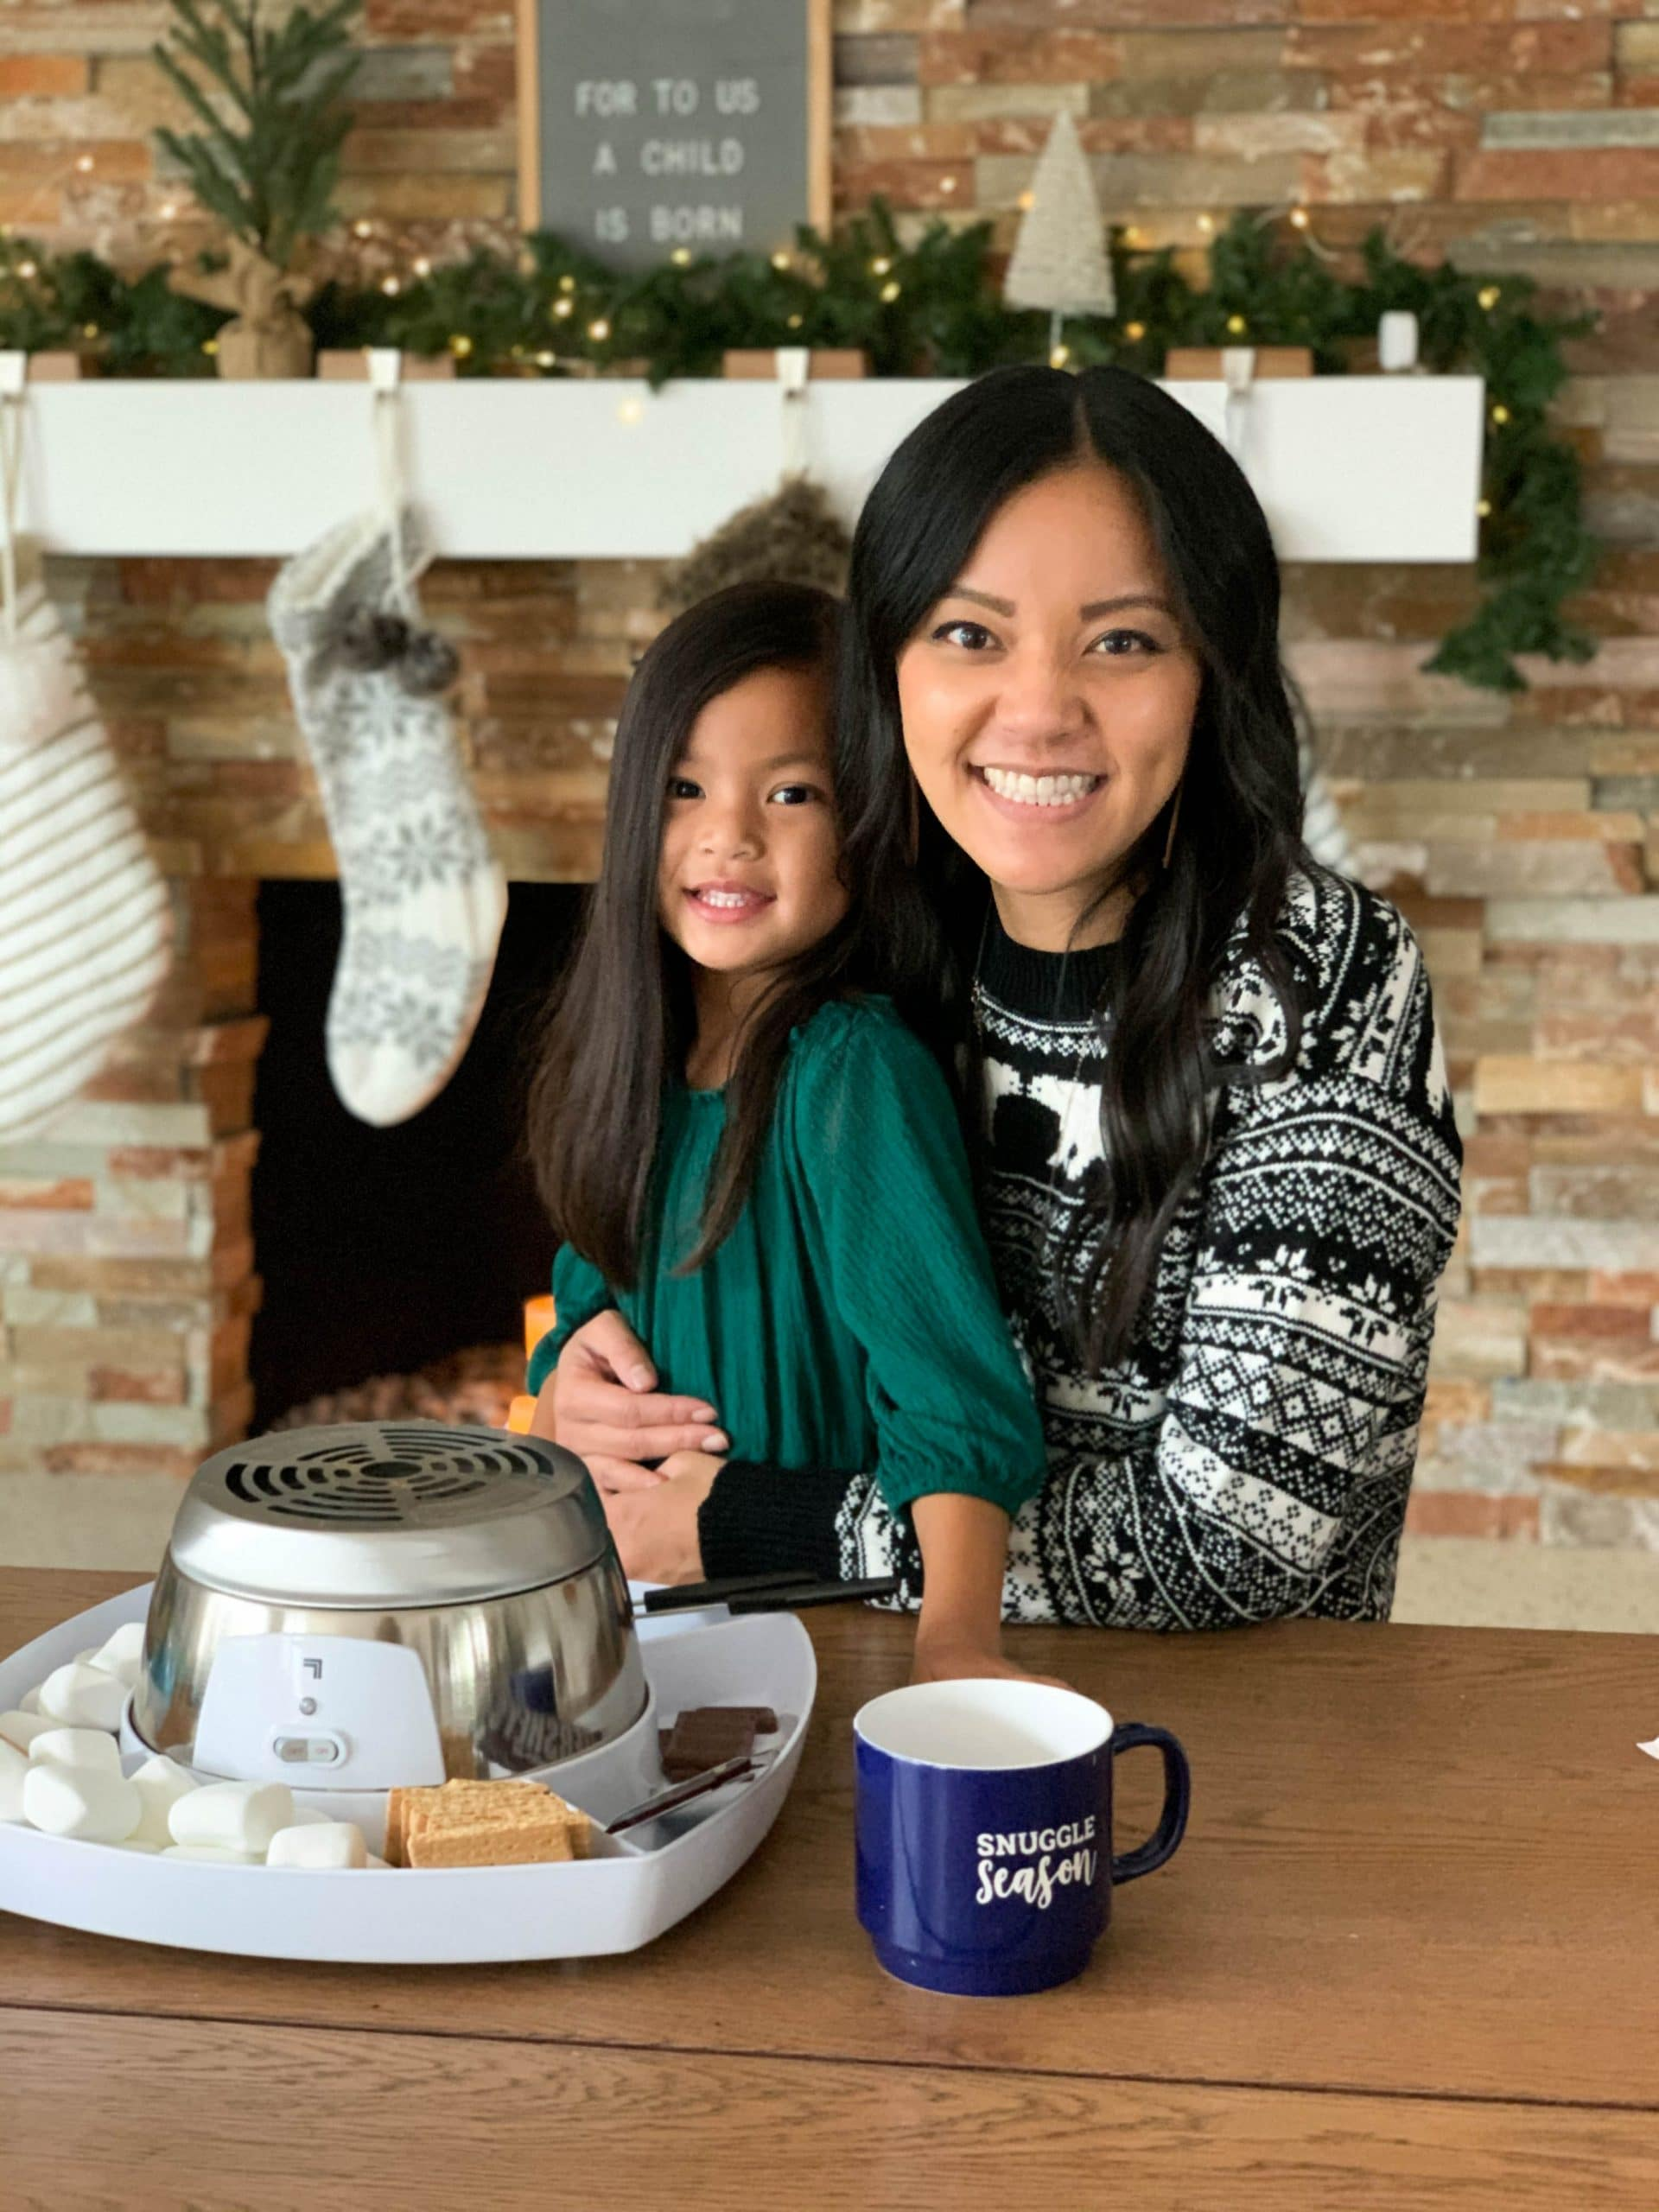 S'mores Maker Fair Isle Sweater Holiday Gifts For the Family